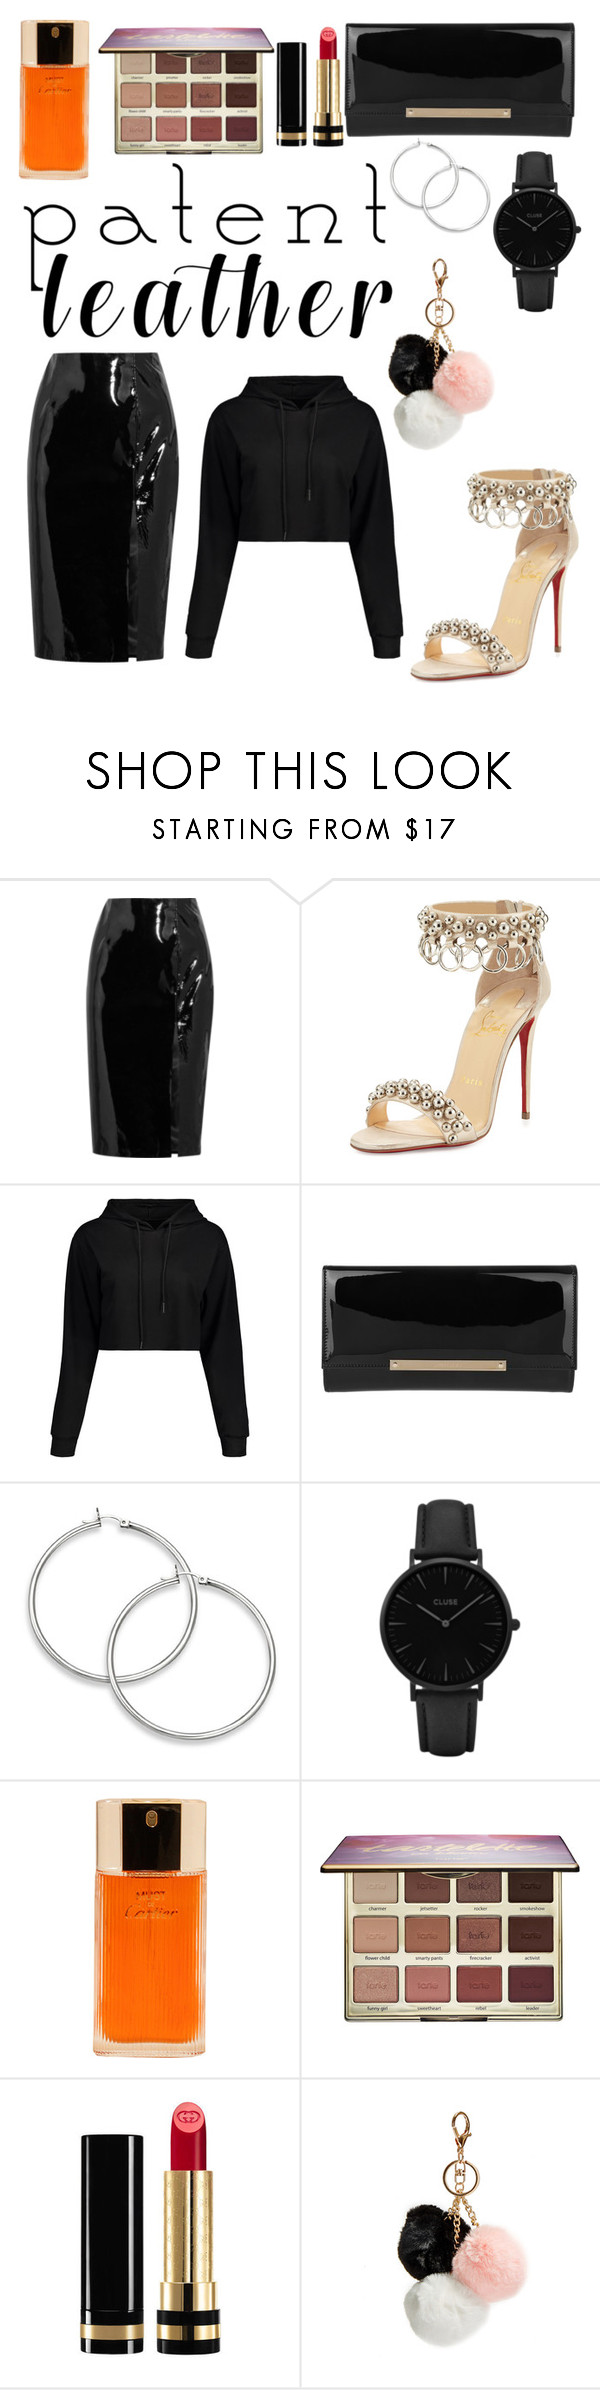 """Pat-in that leather"" by tatianabilly ❤ liked on Polyvore featuring Topshop Unique, Christian Louboutin, Jimmy Choo, CLUSE, Cartier, tarte, Gucci and GUESS"